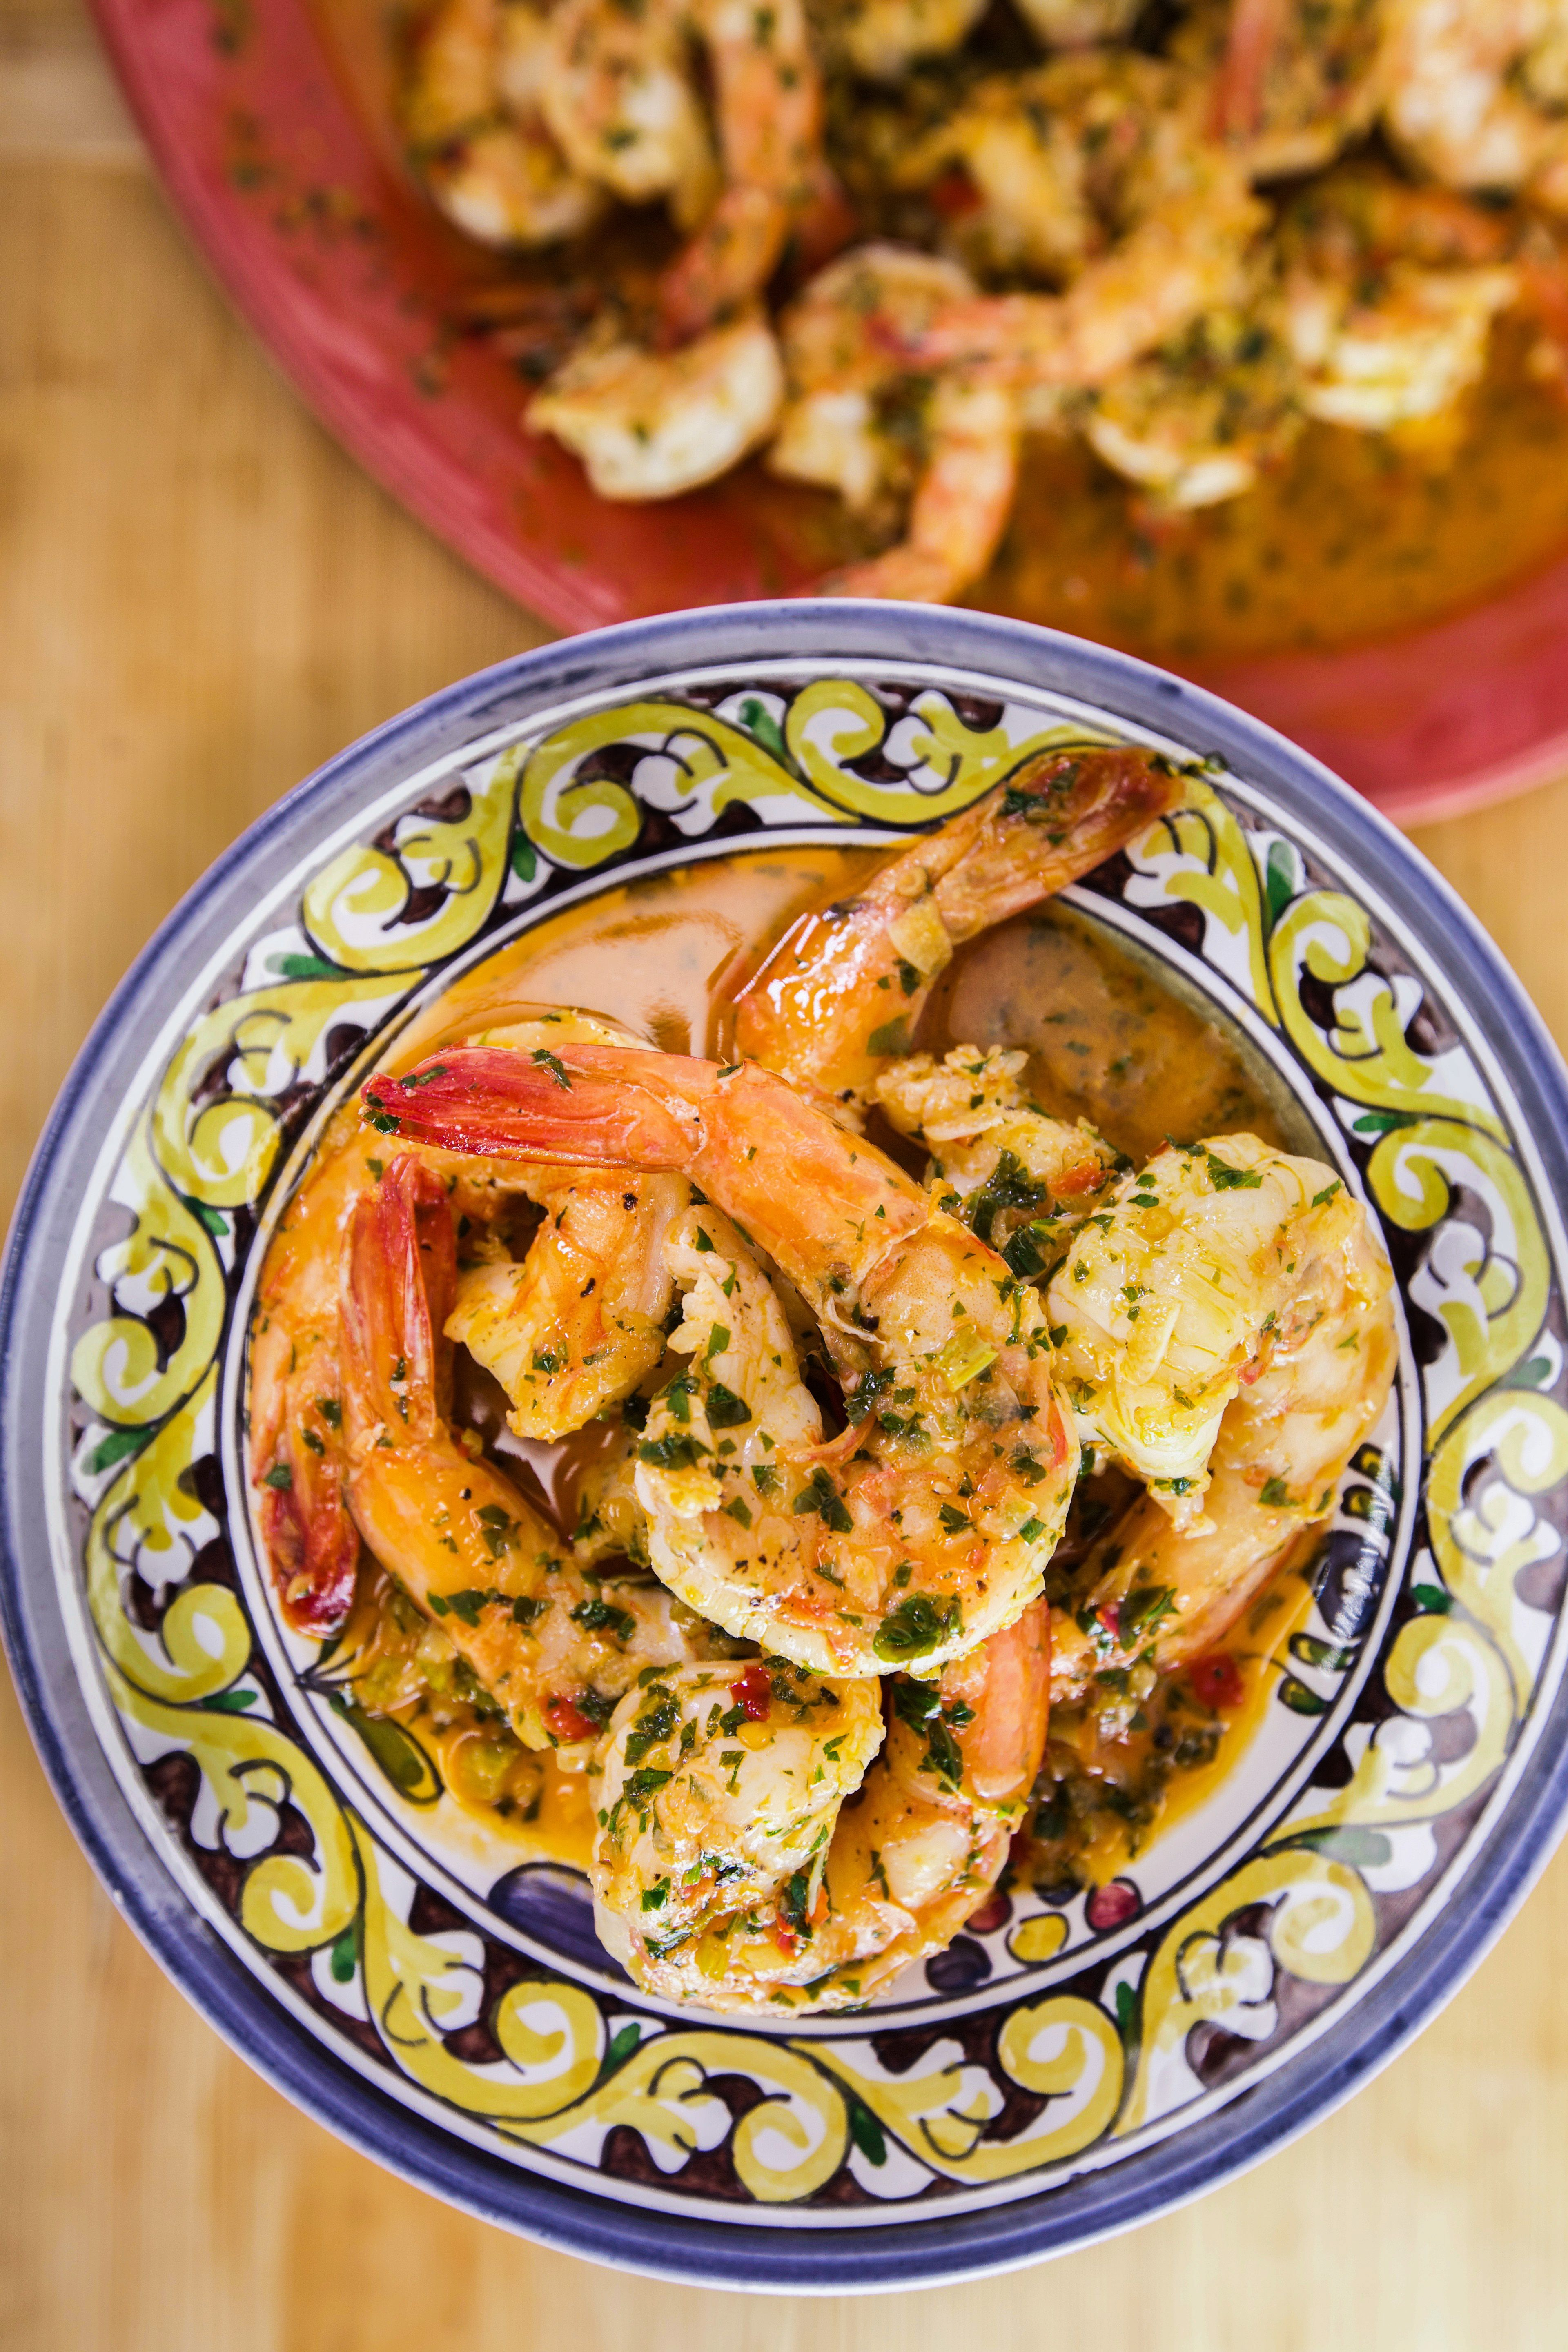 Rachael Ray S Calabrian Style Shrimp Scampi Rachael Ray Recipes Rachel Ray Recipes Rachel Ray 30 Minute Meals